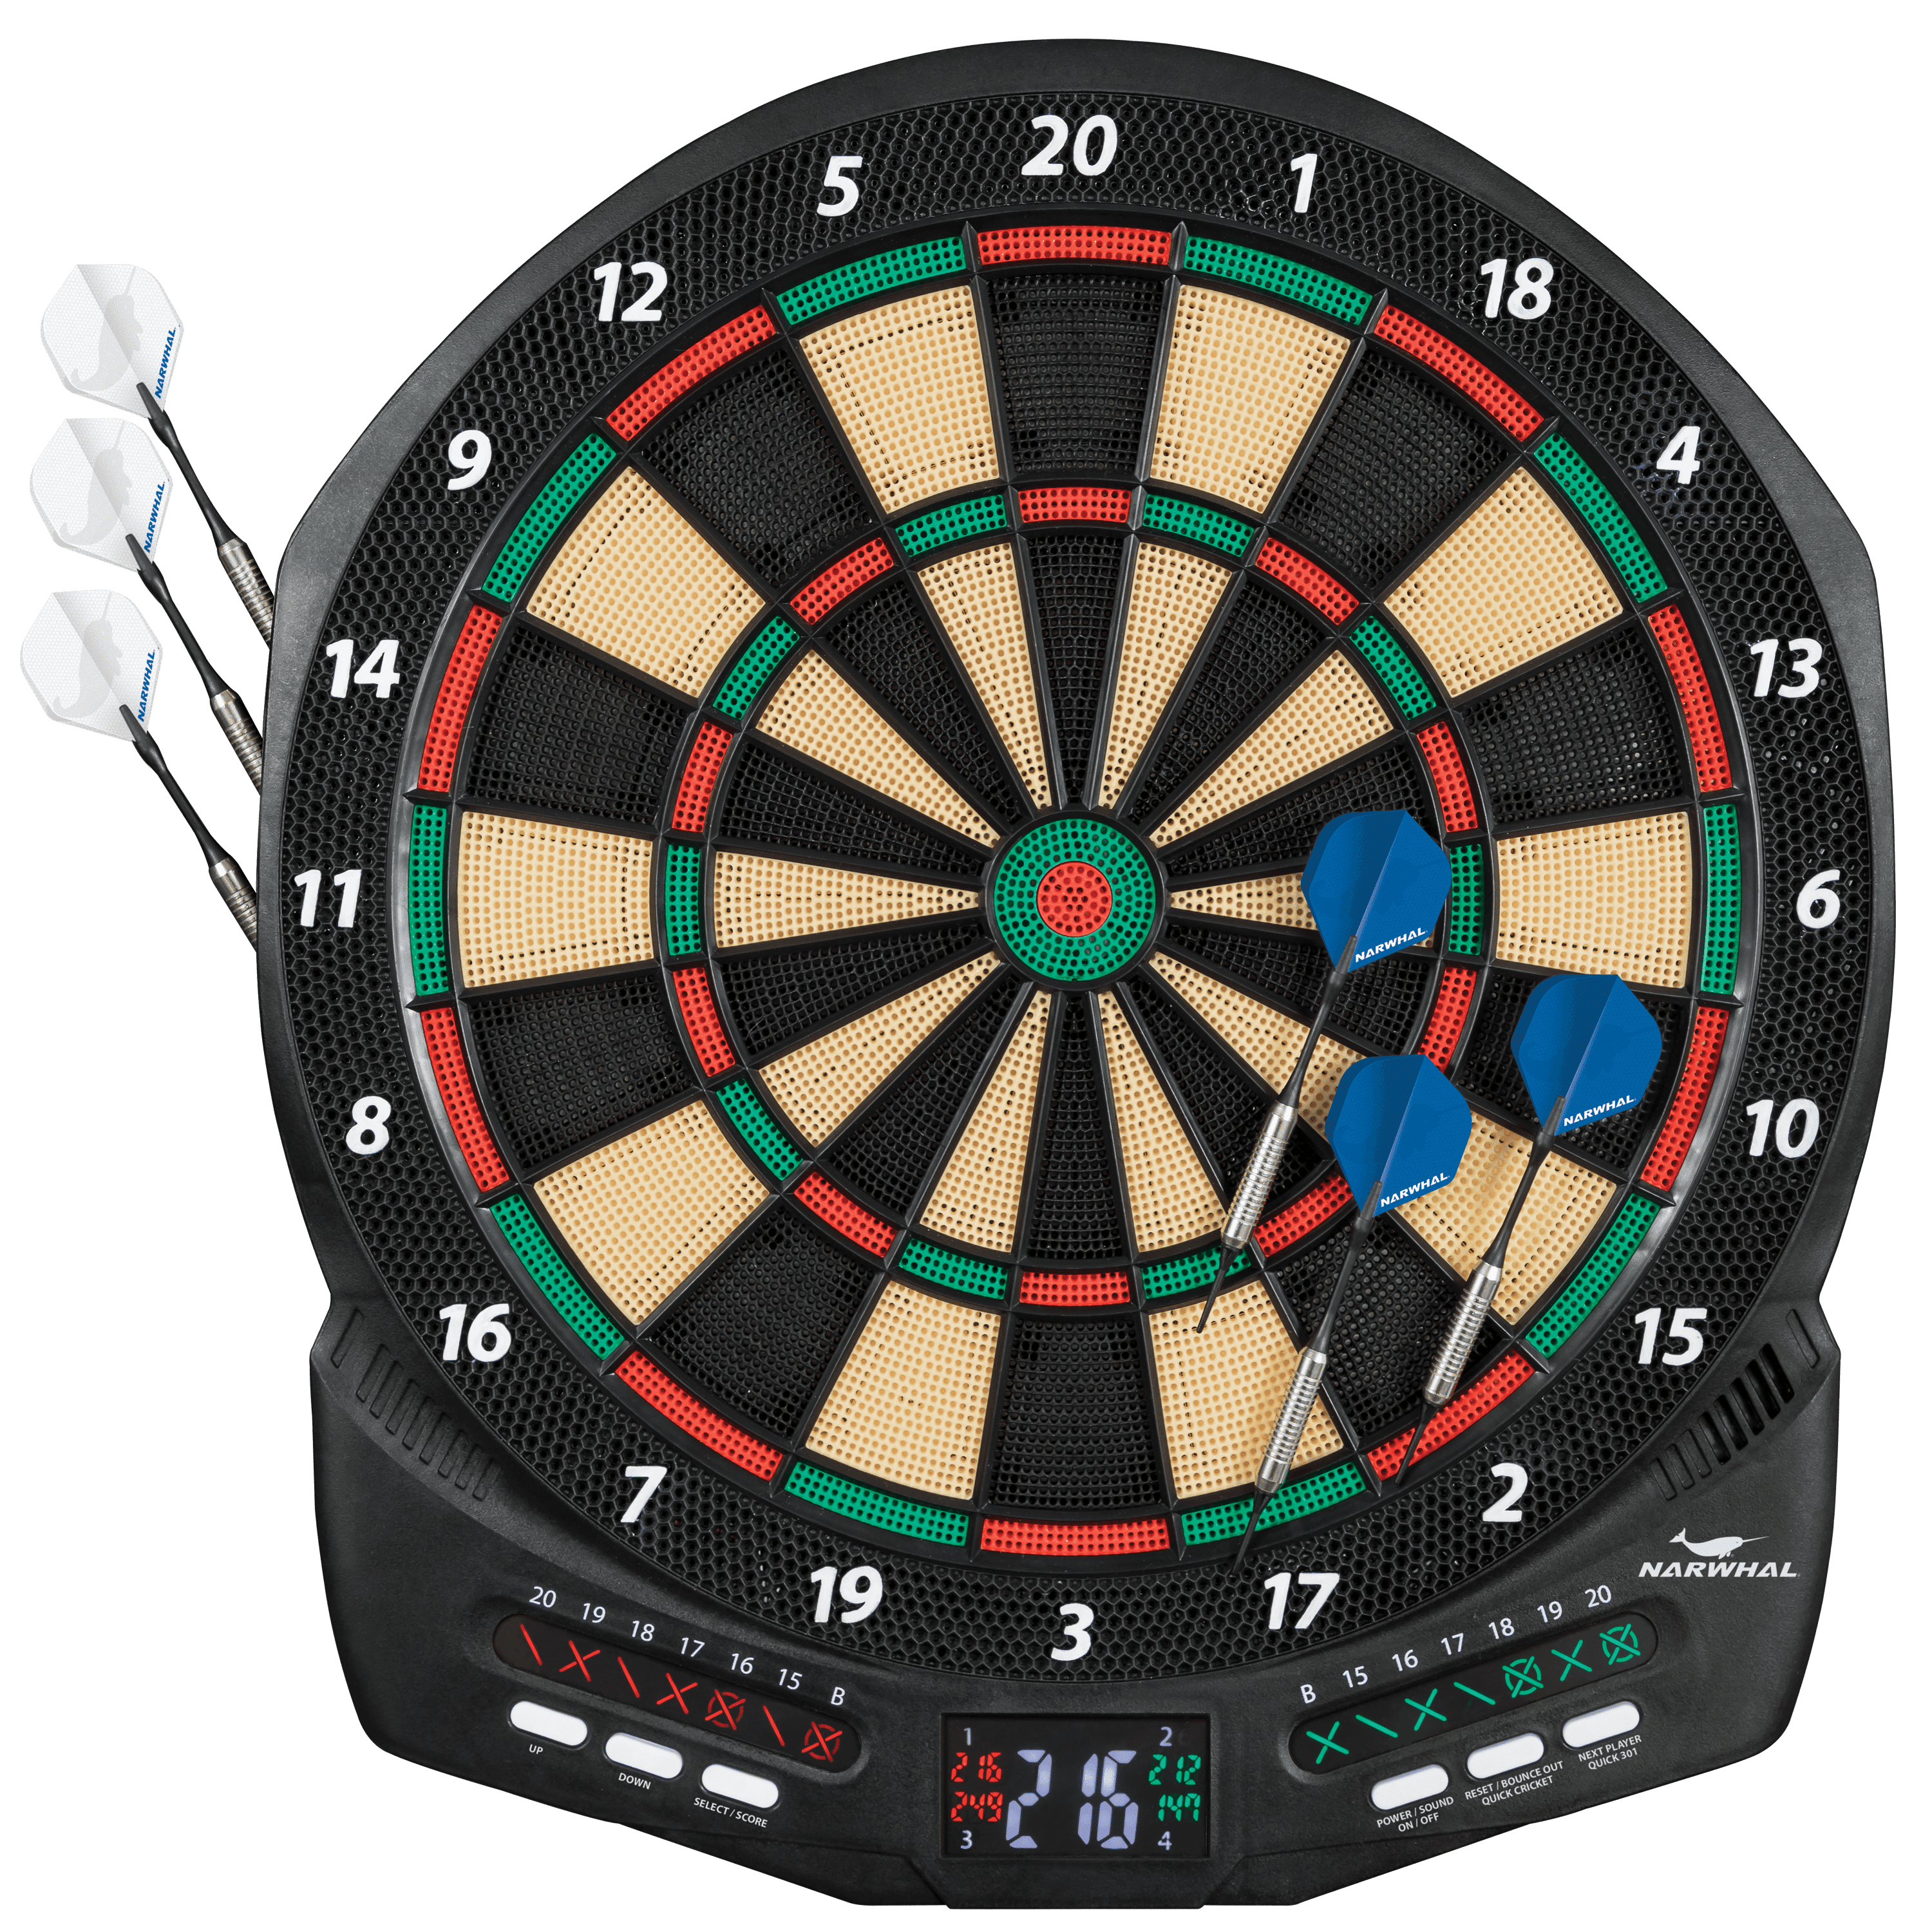 Narwhal Diablo Electronic Dartboard Set With Cricket Scoring